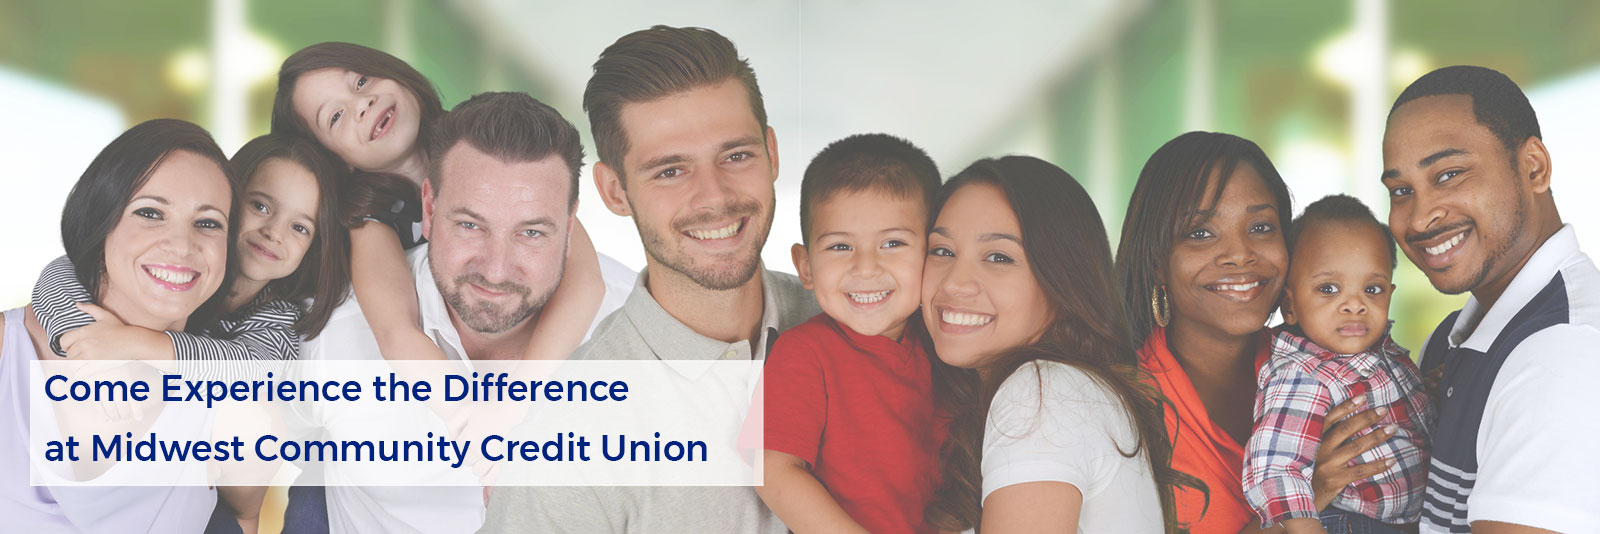 Come Experience the Difference at Midwest Community Credit Union